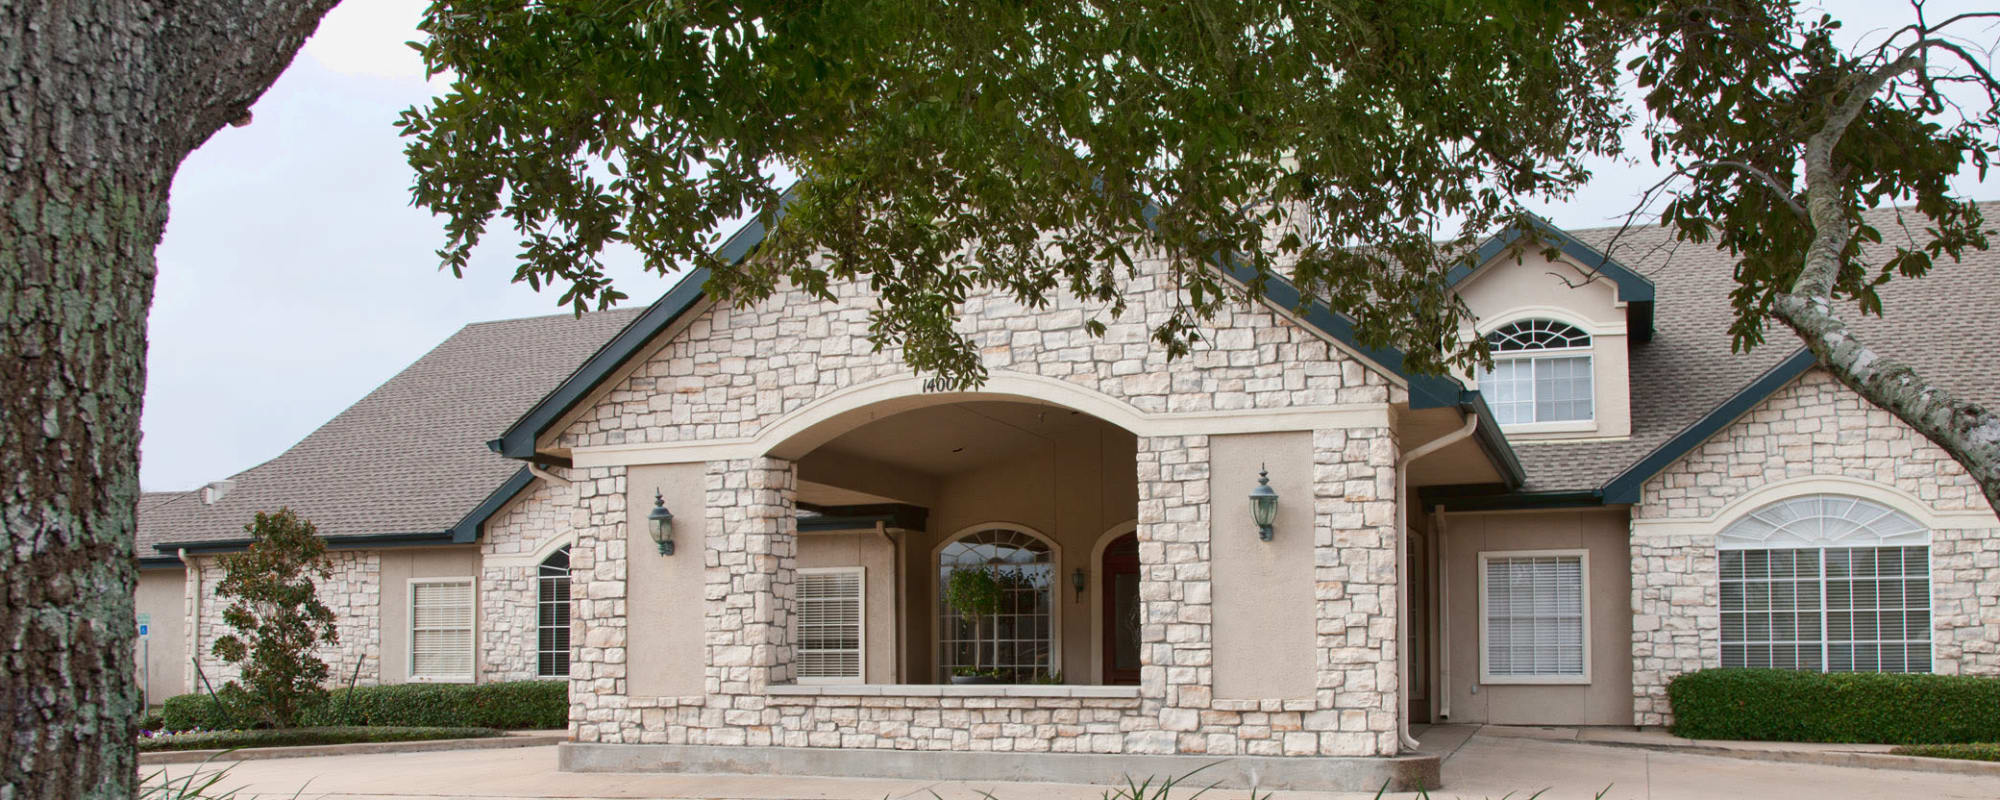 Contact Us of Autumn Grove Cottage at Pearland in Manvel, Texas